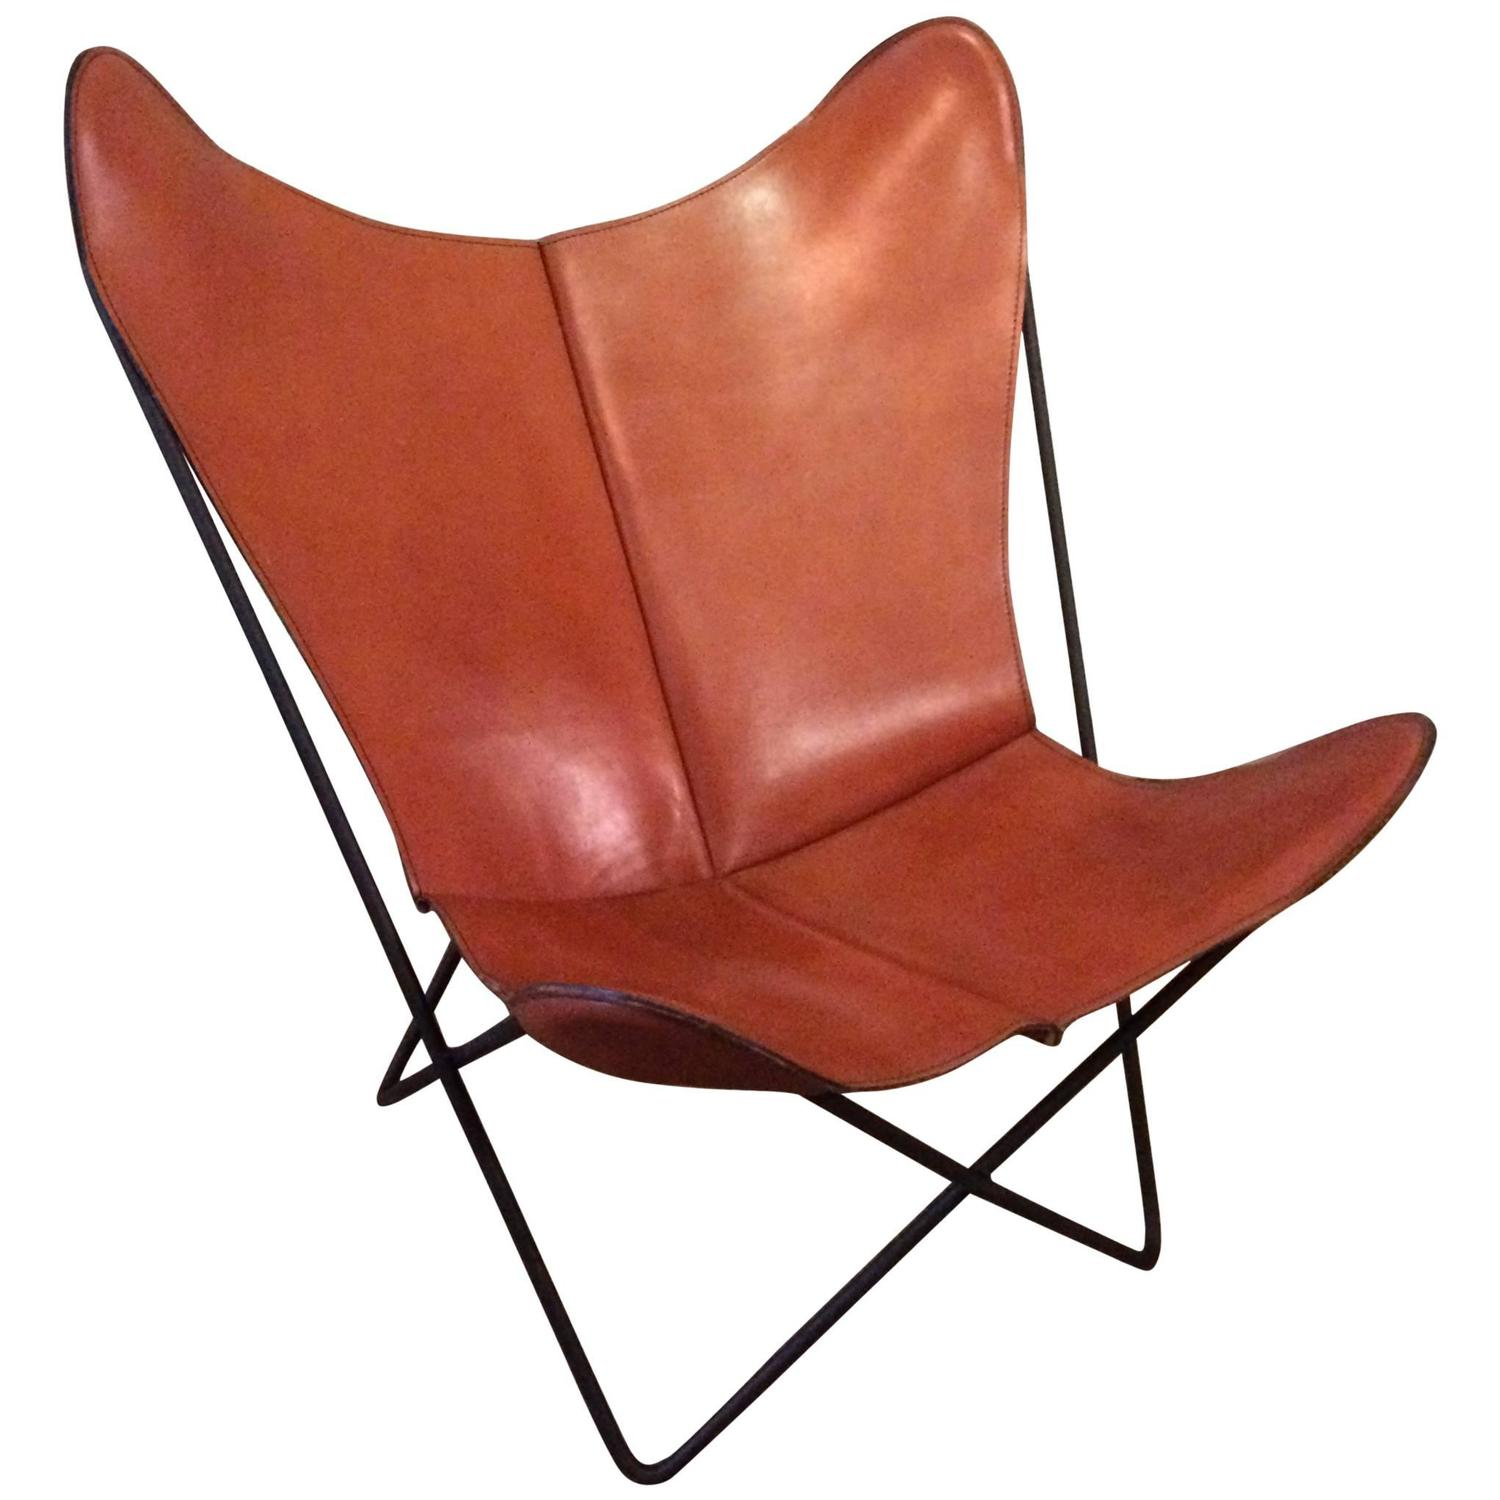 Leather Butterfly Chair by Jorge Ferrari Hardoy for Knoll For Sale at 1stdibs